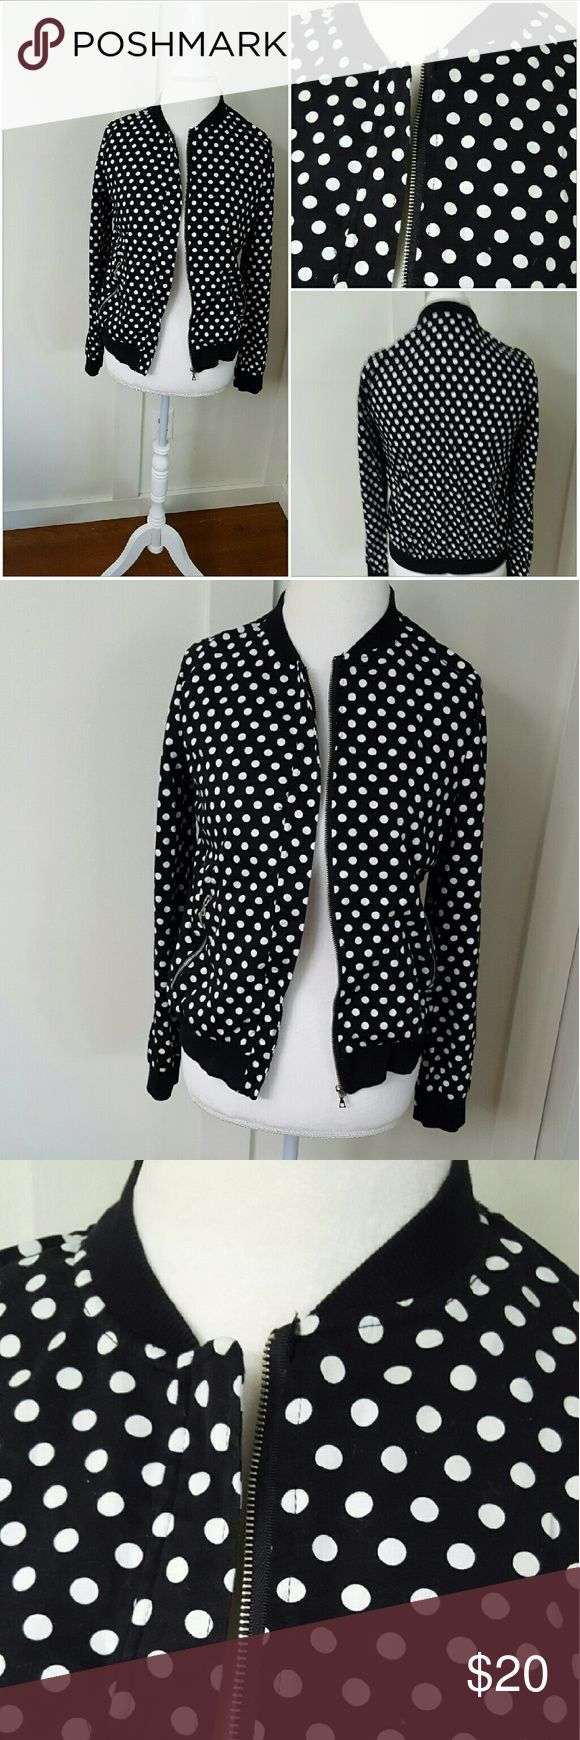 BLACK AND WHITE POLKA DOT ZIP UP JACKET Black and white polka dot zip up jacket. Pre-owned and in good condition. Jackets & Coats Blazers